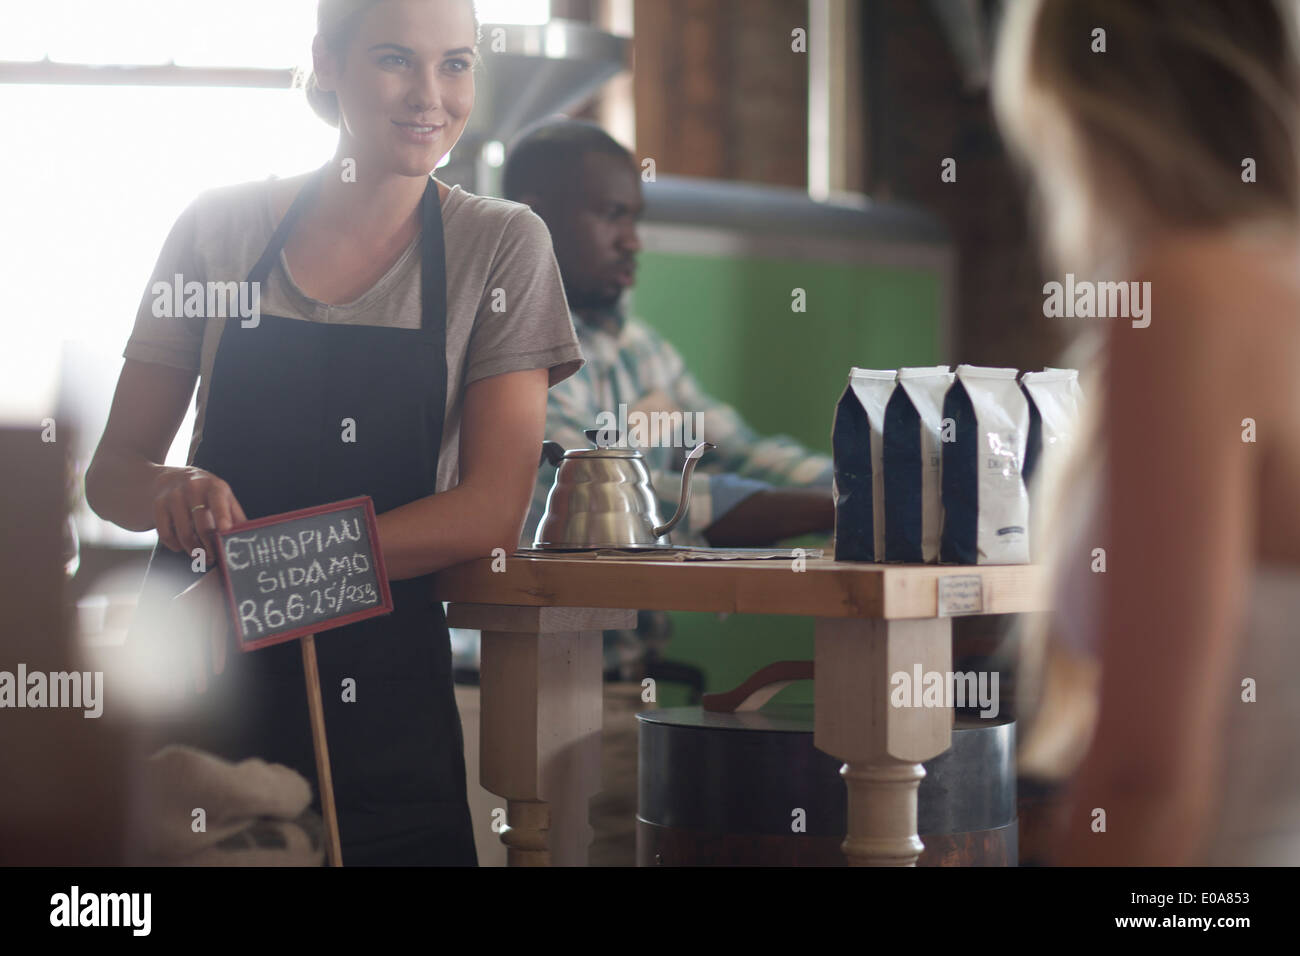 Young female waitress advising on coffee choice in cafe - Stock Image